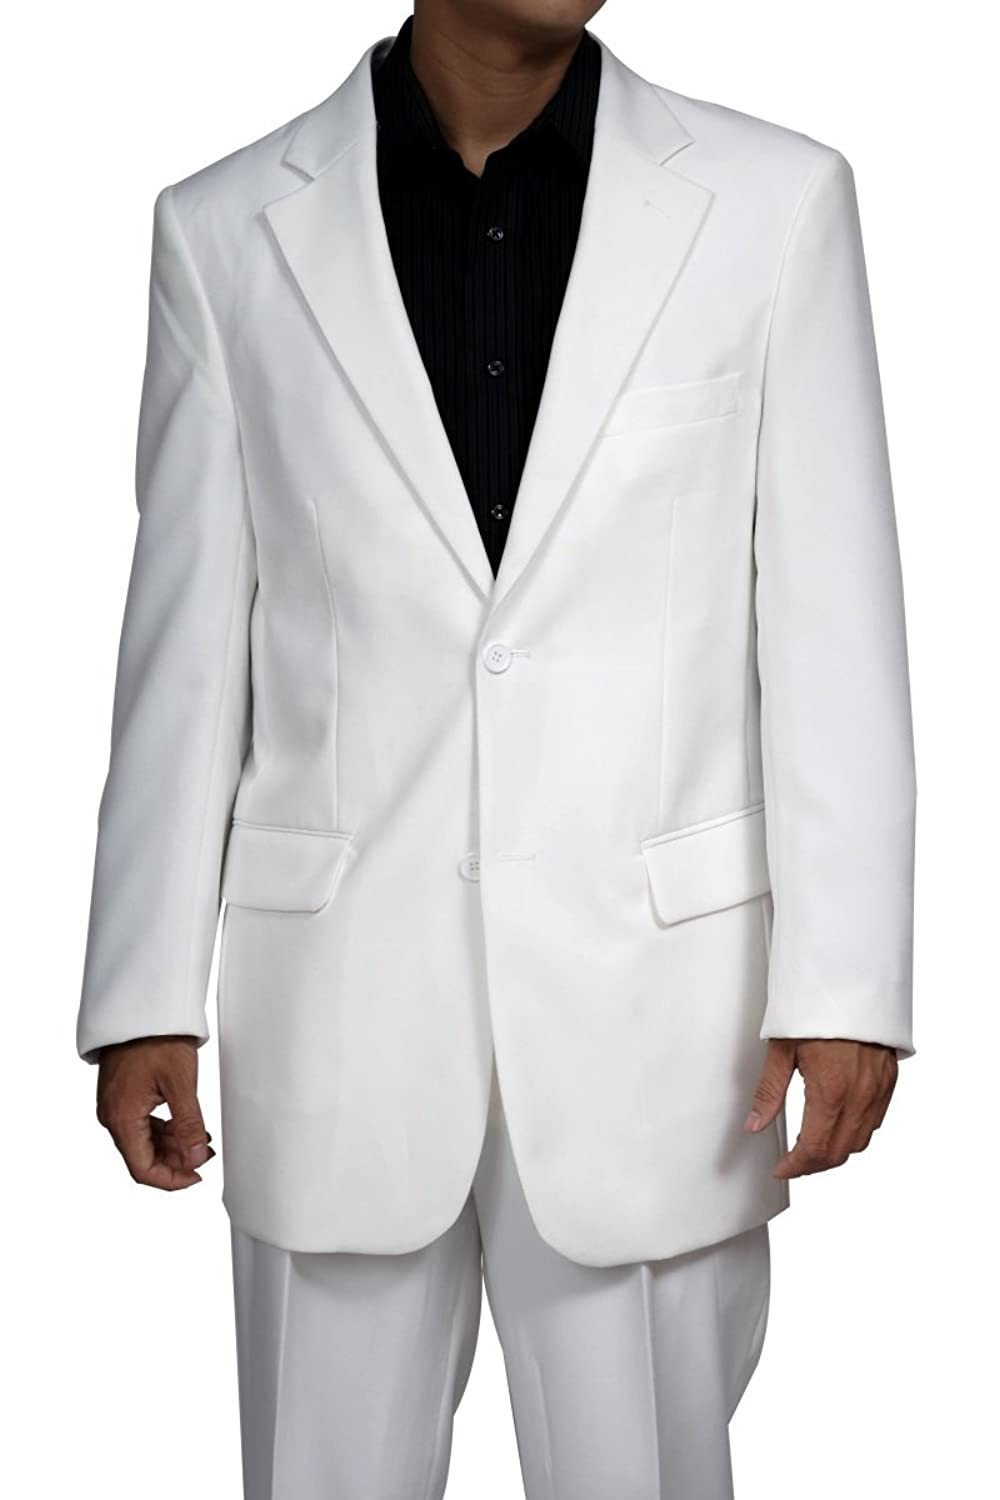 1960s Mens Suits | 70s Mens Disco Suits New Mens 2 Button White Dress Suit - Includes Jacket and Pants $99.90 AT vintagedancer.com